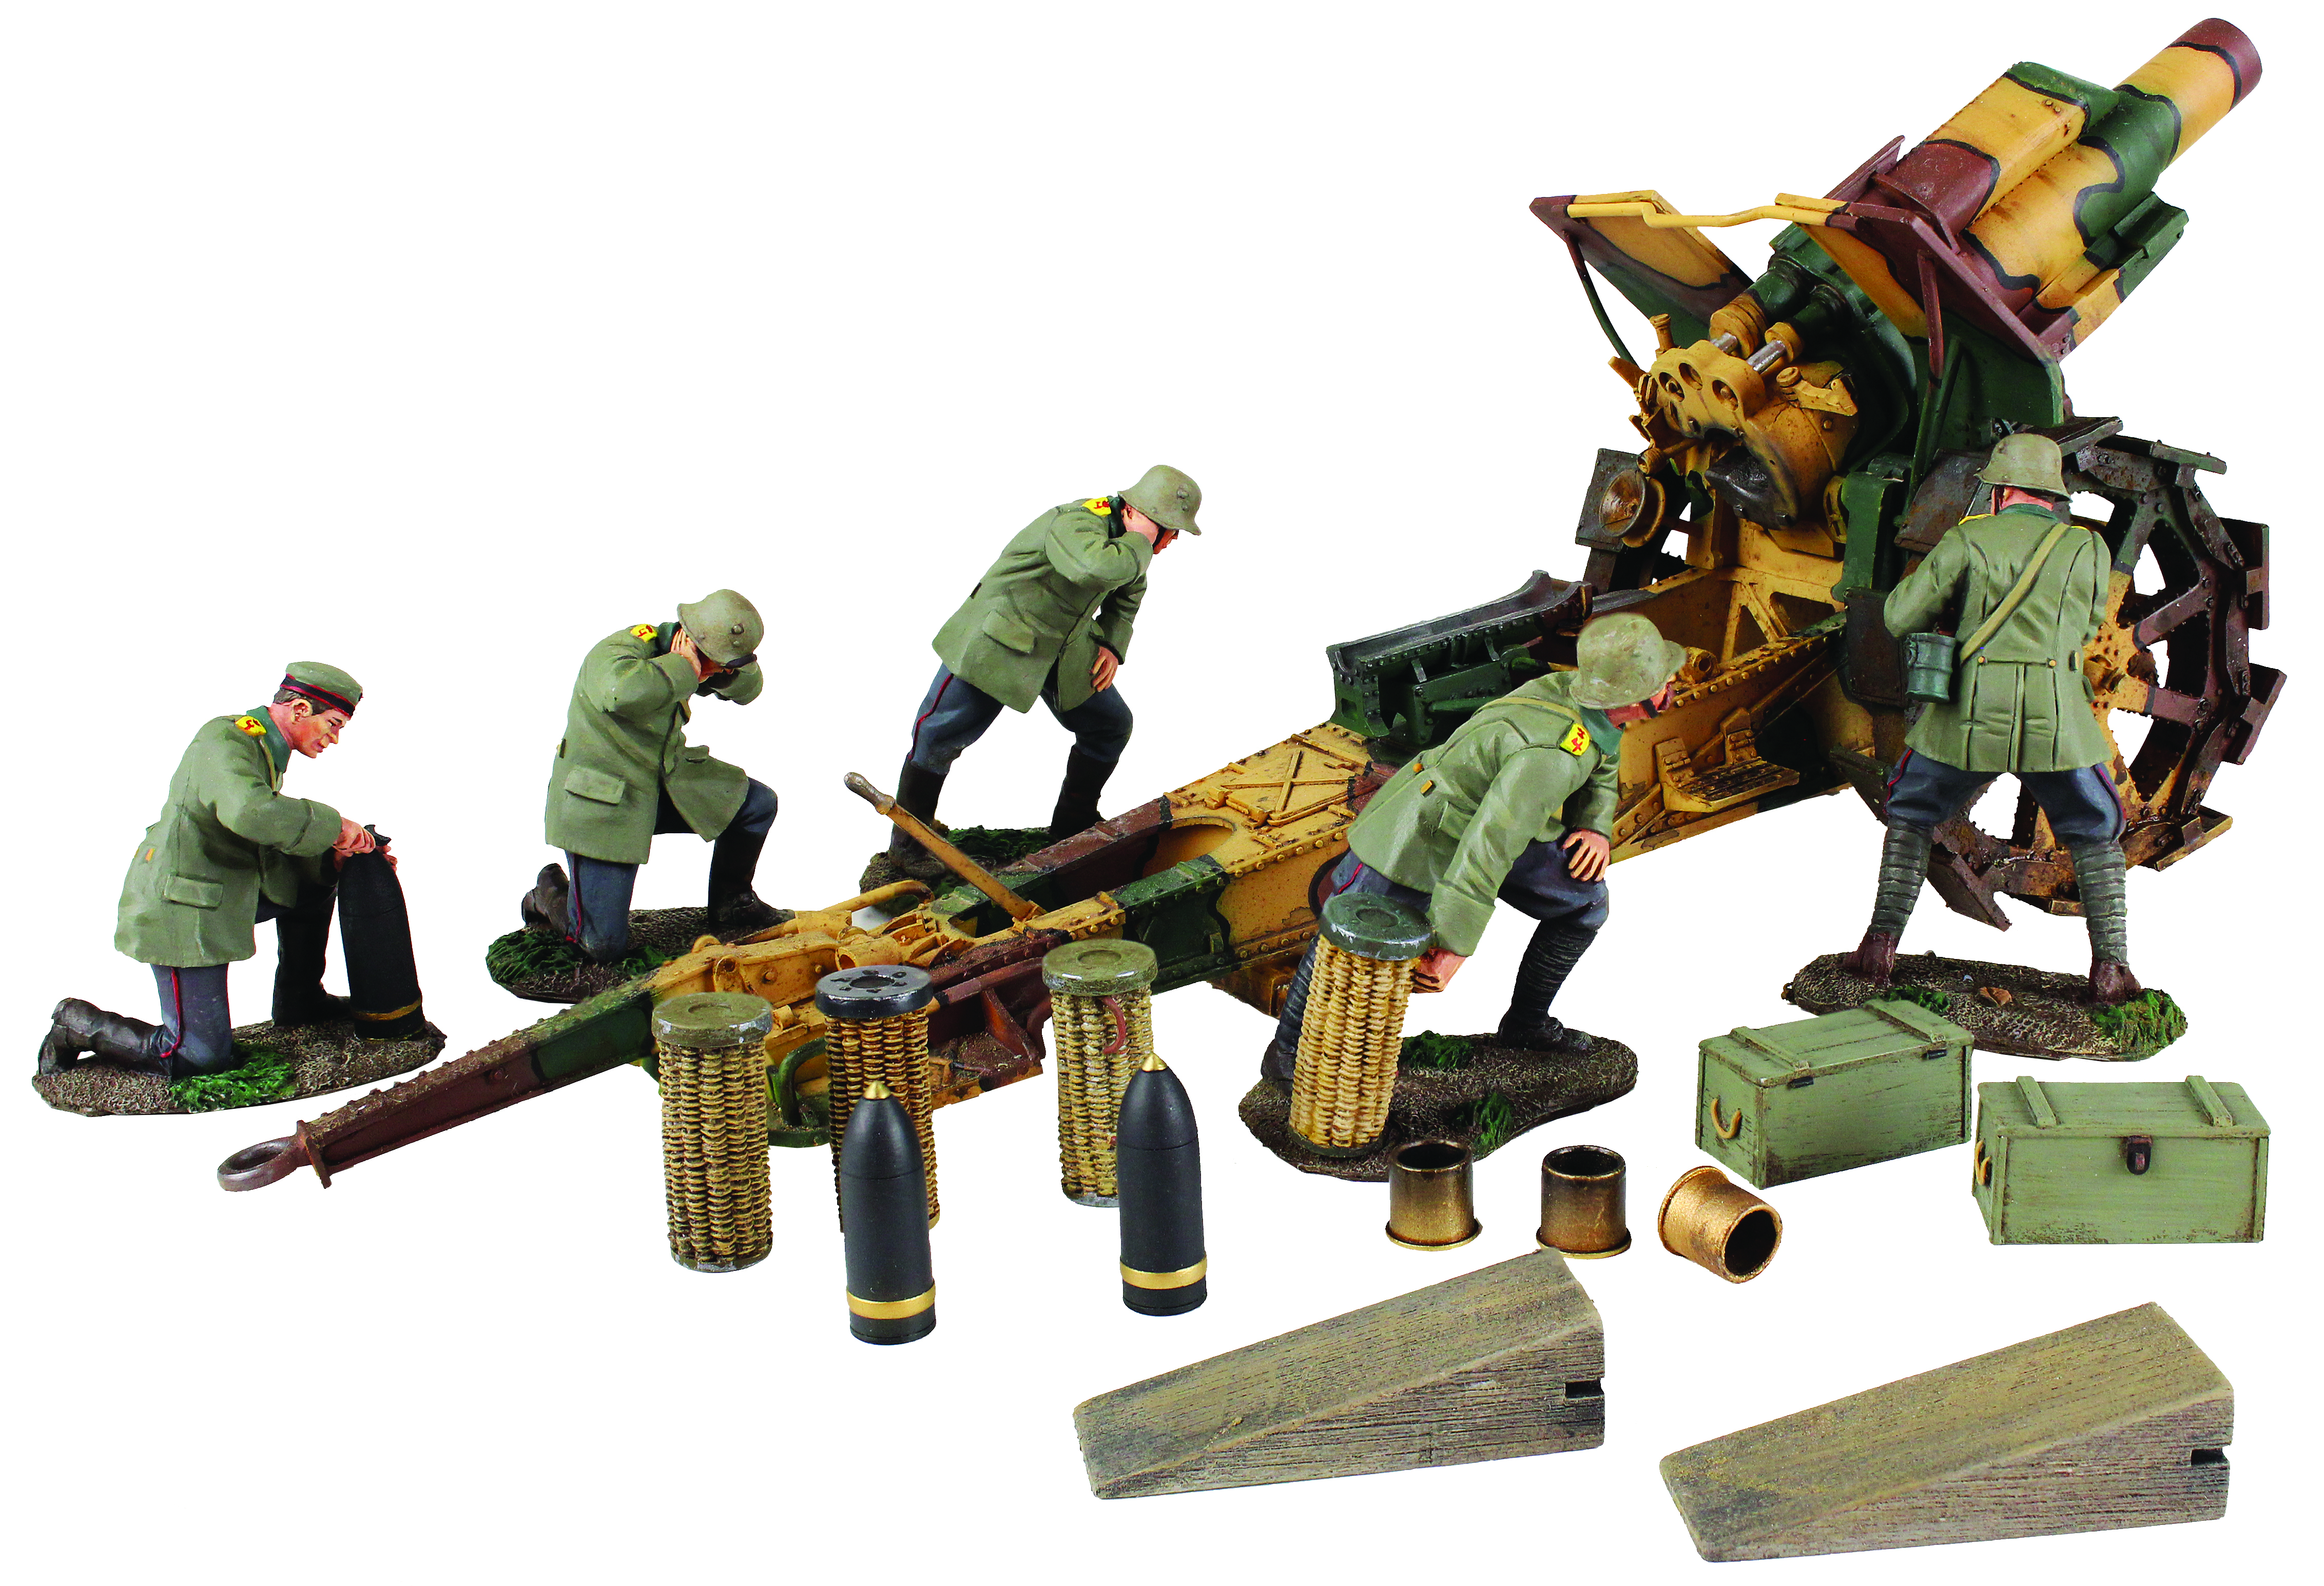 1916-18 German 210mm Howitzer and 5 Man Crew  - 6 Piece Set and Accessories Limited Edition of 400 Sets